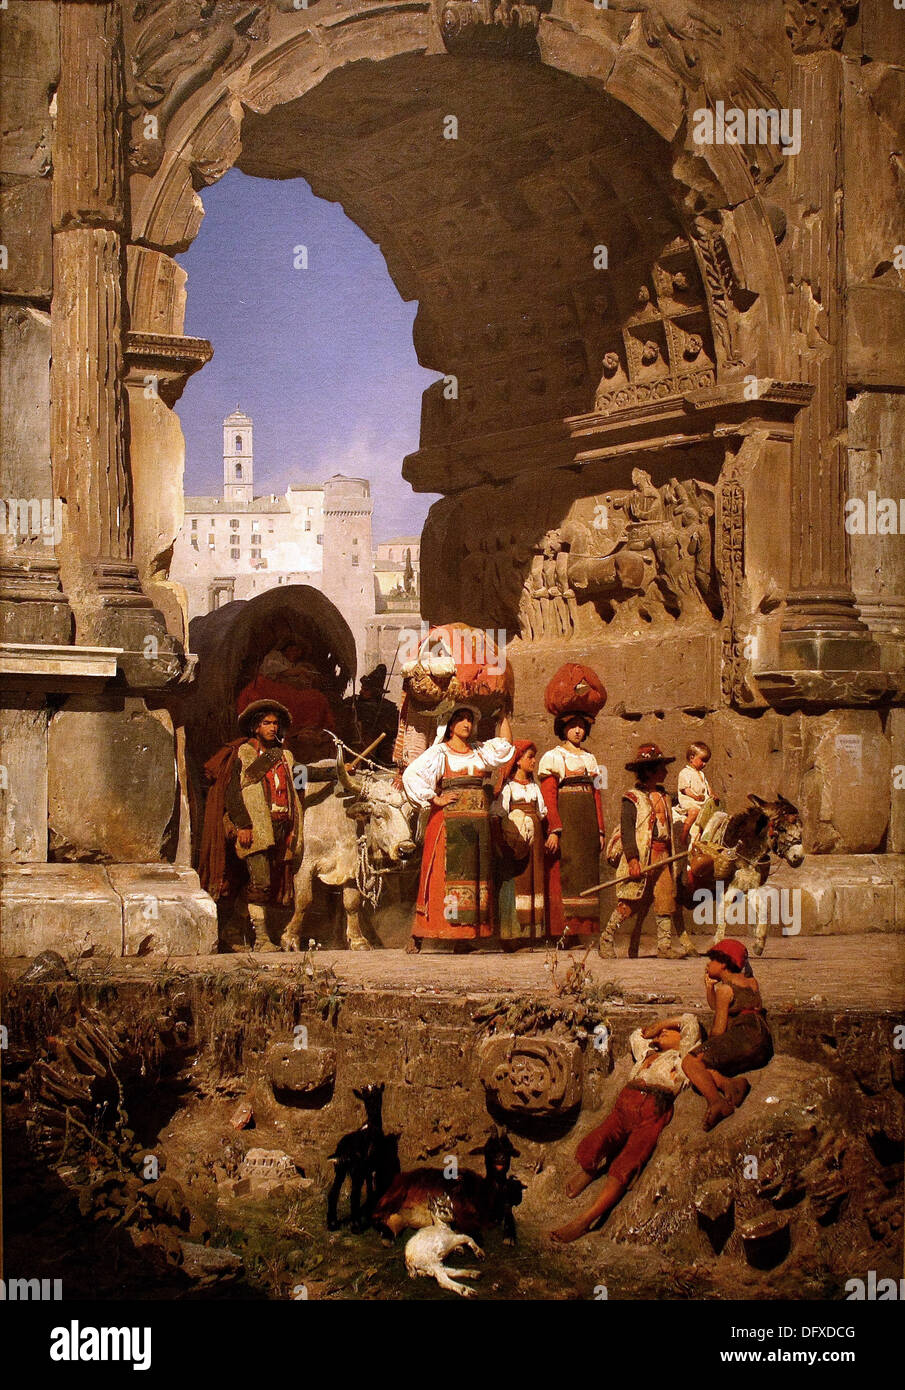 Franz von LENBACH - The Triumphal Arch of Titus in Rome - 1860 - Museum of Fine Arts - Budapest, Hungary. - Stock Image